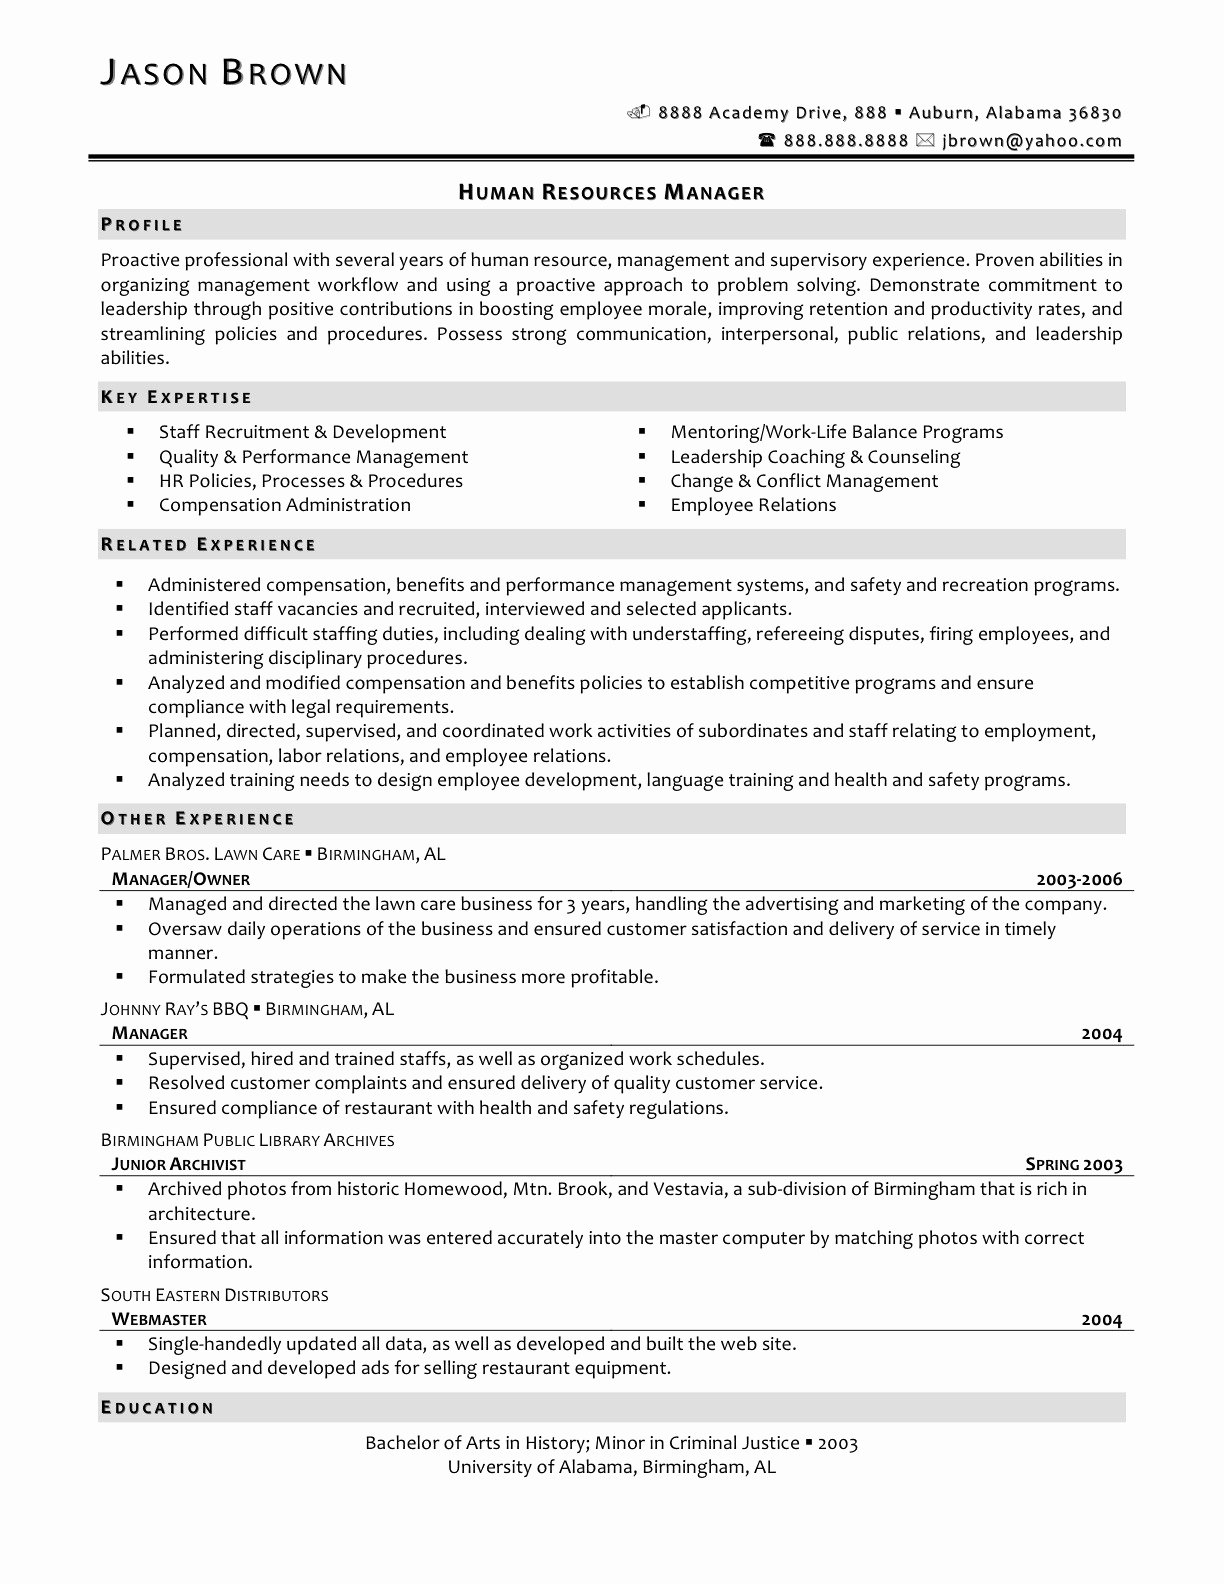 Human Resource Manager Resume Template Fresh Professional Resume Human Resources Manager Bongdaao